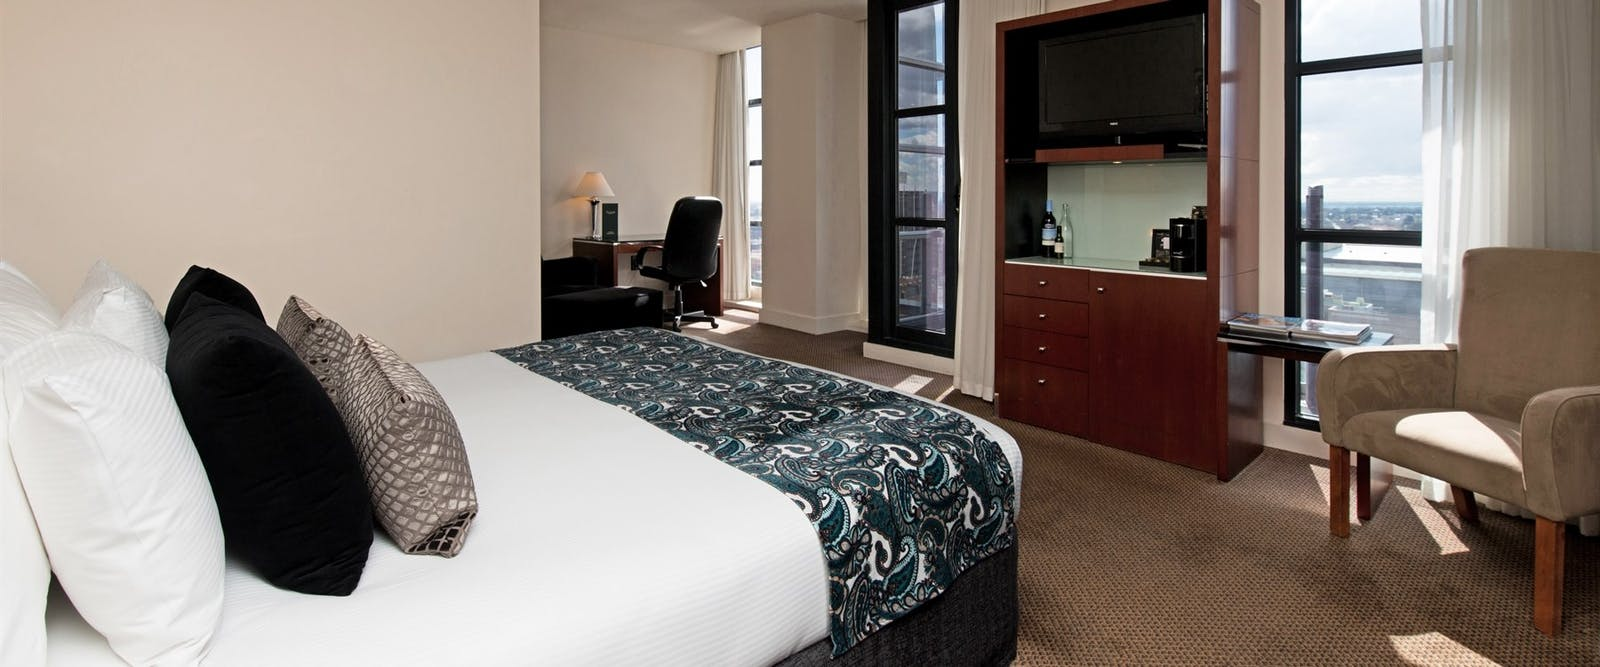 Deluxe room, Peppers Waymouth Hotel, Adelaide